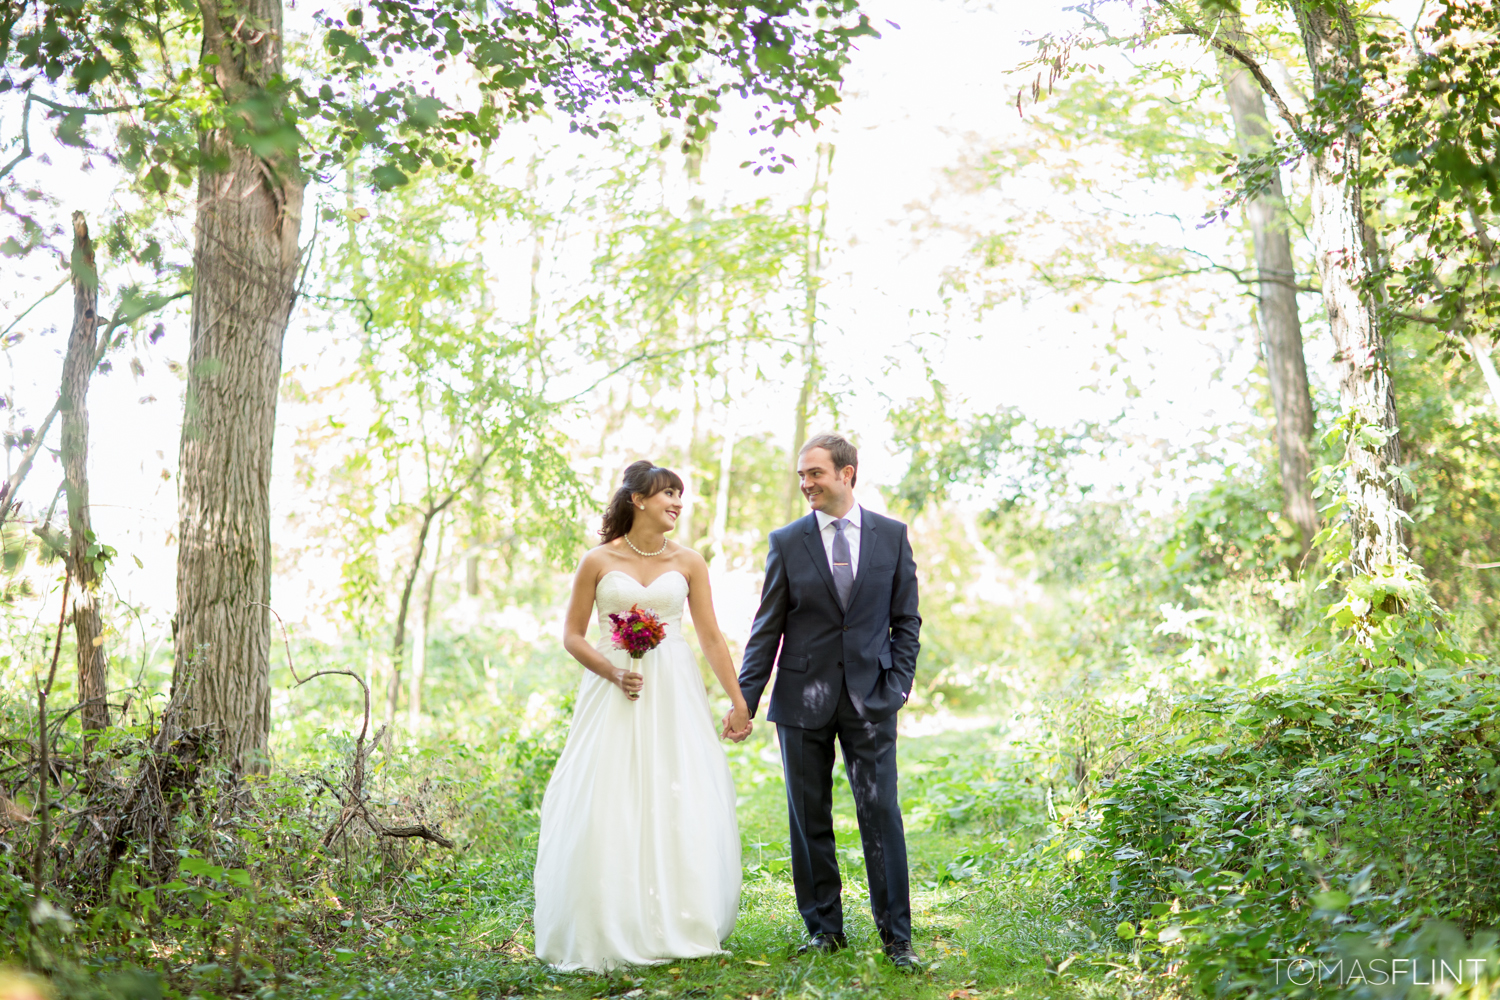 Finger Lakes Wedding Photographs Seneca Lake Wine Trail Villa Bellangelo Winery Michelle William